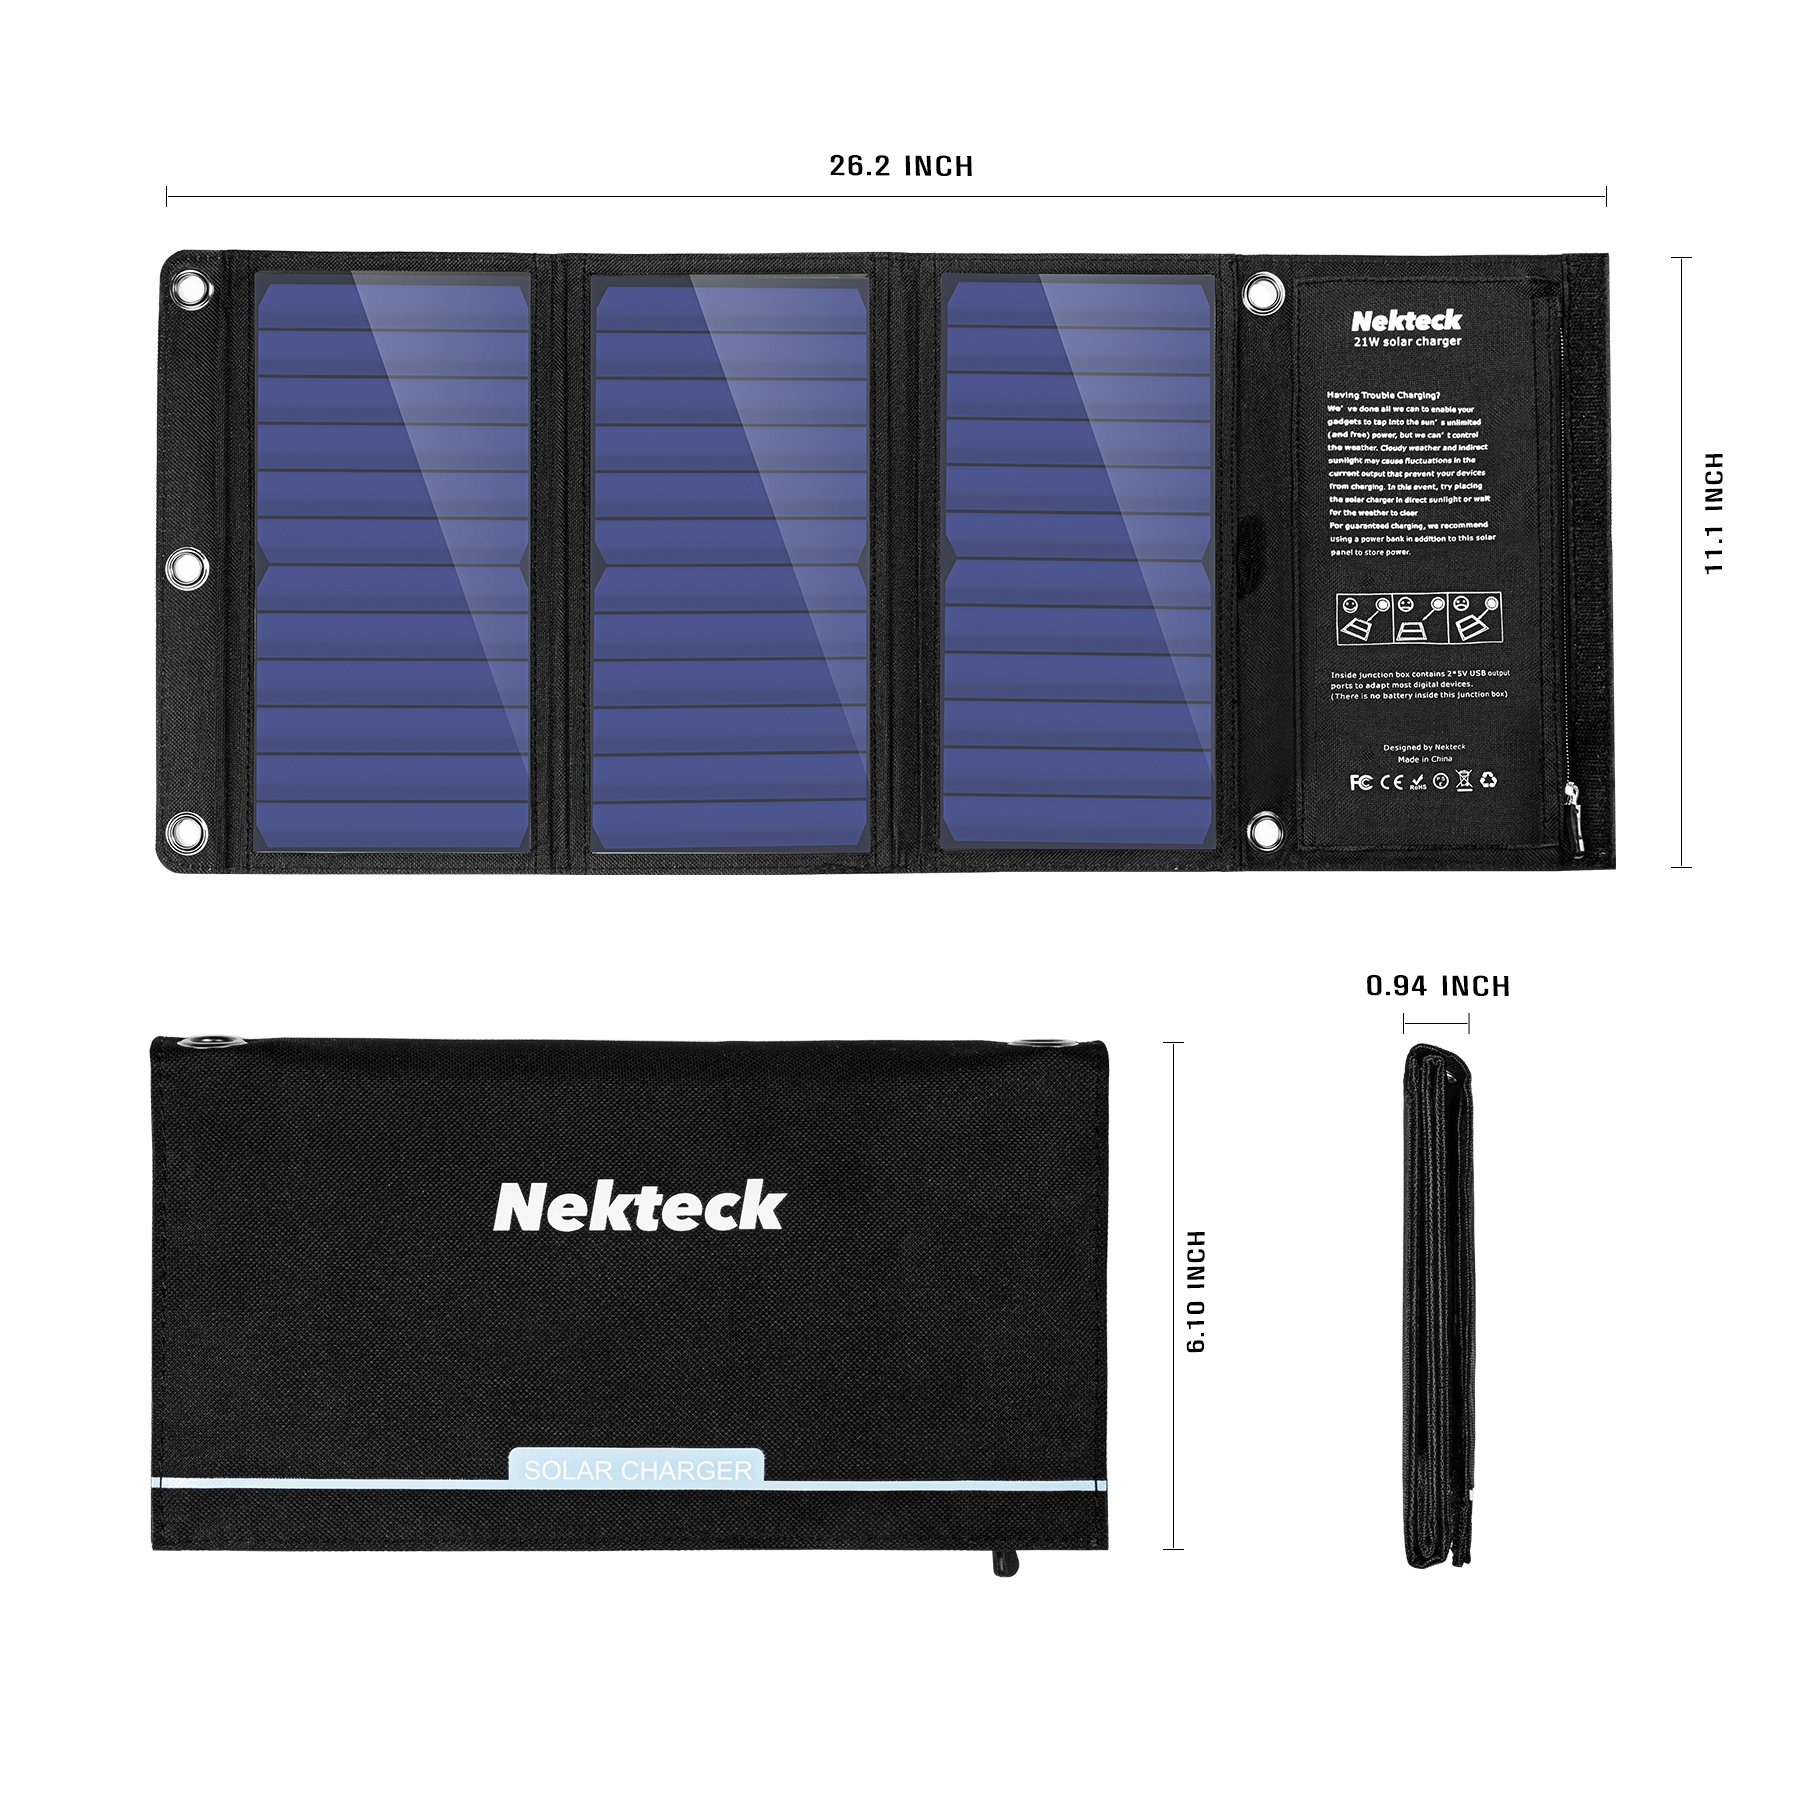 Nekteck 21W Solar Charger with 2-Port USB Charger Build with High Efficiency Solar Panel Cell for iPhone 6s / 6 / Plus, SE, iPad, Galaxy S6/S7/ Edge/Plus, Nexus 5X/6P, Any USB Devices, and More by Nekteck (Image #6)